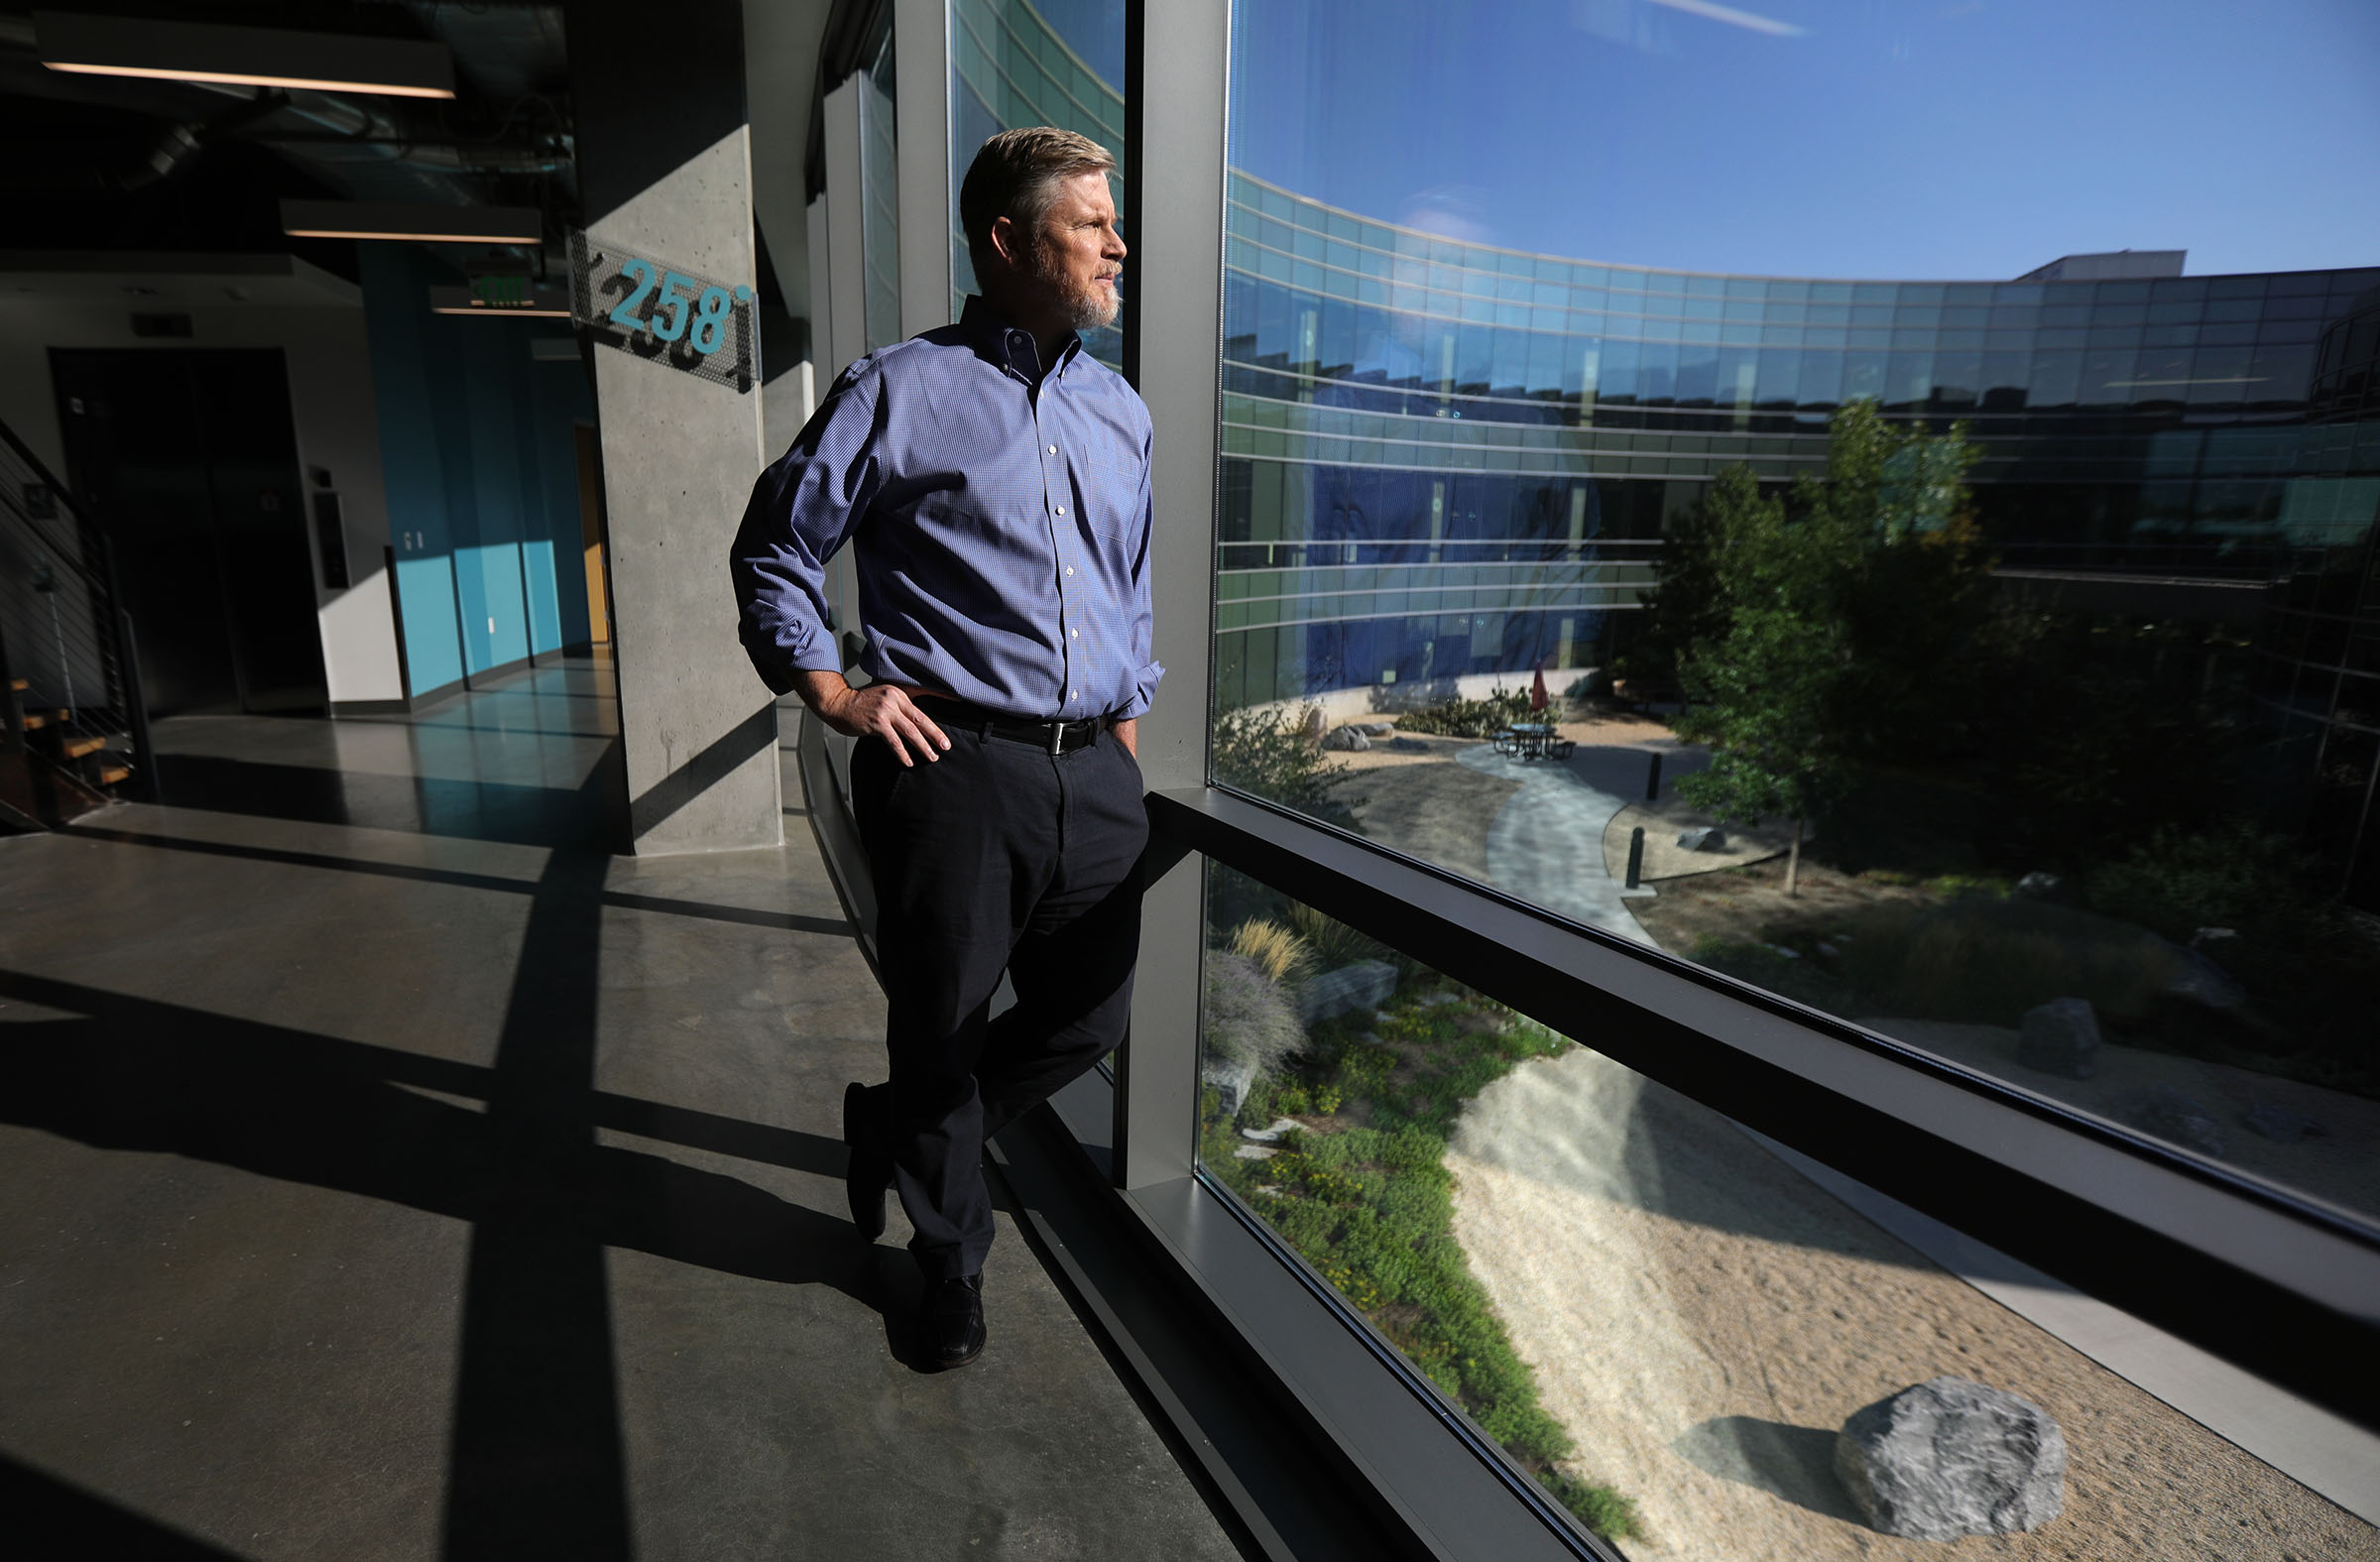 Overstock CEO Jonathan Johnson poses for a portrait at the Overstock headquarters in Midvale on Wednesday, Sept. 15, 2021.